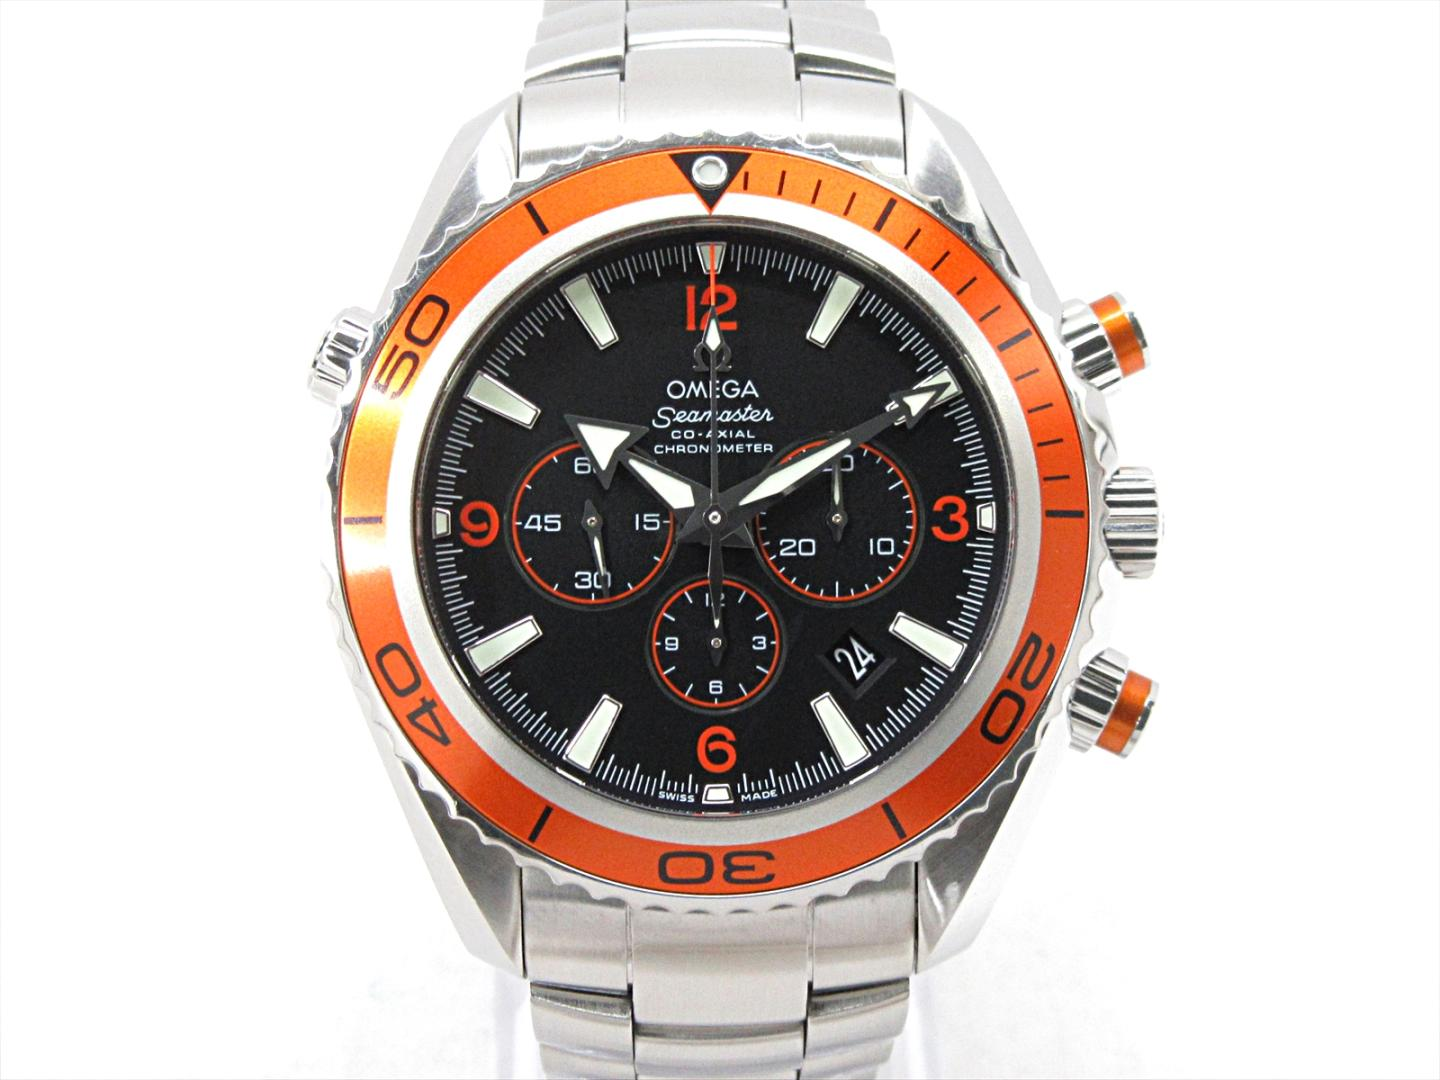 Auth Omega Seamaster Planet Ocean Watch 2218 50 Automatic Stainless Steel Used Brandoff Ginza Tokyo Japan